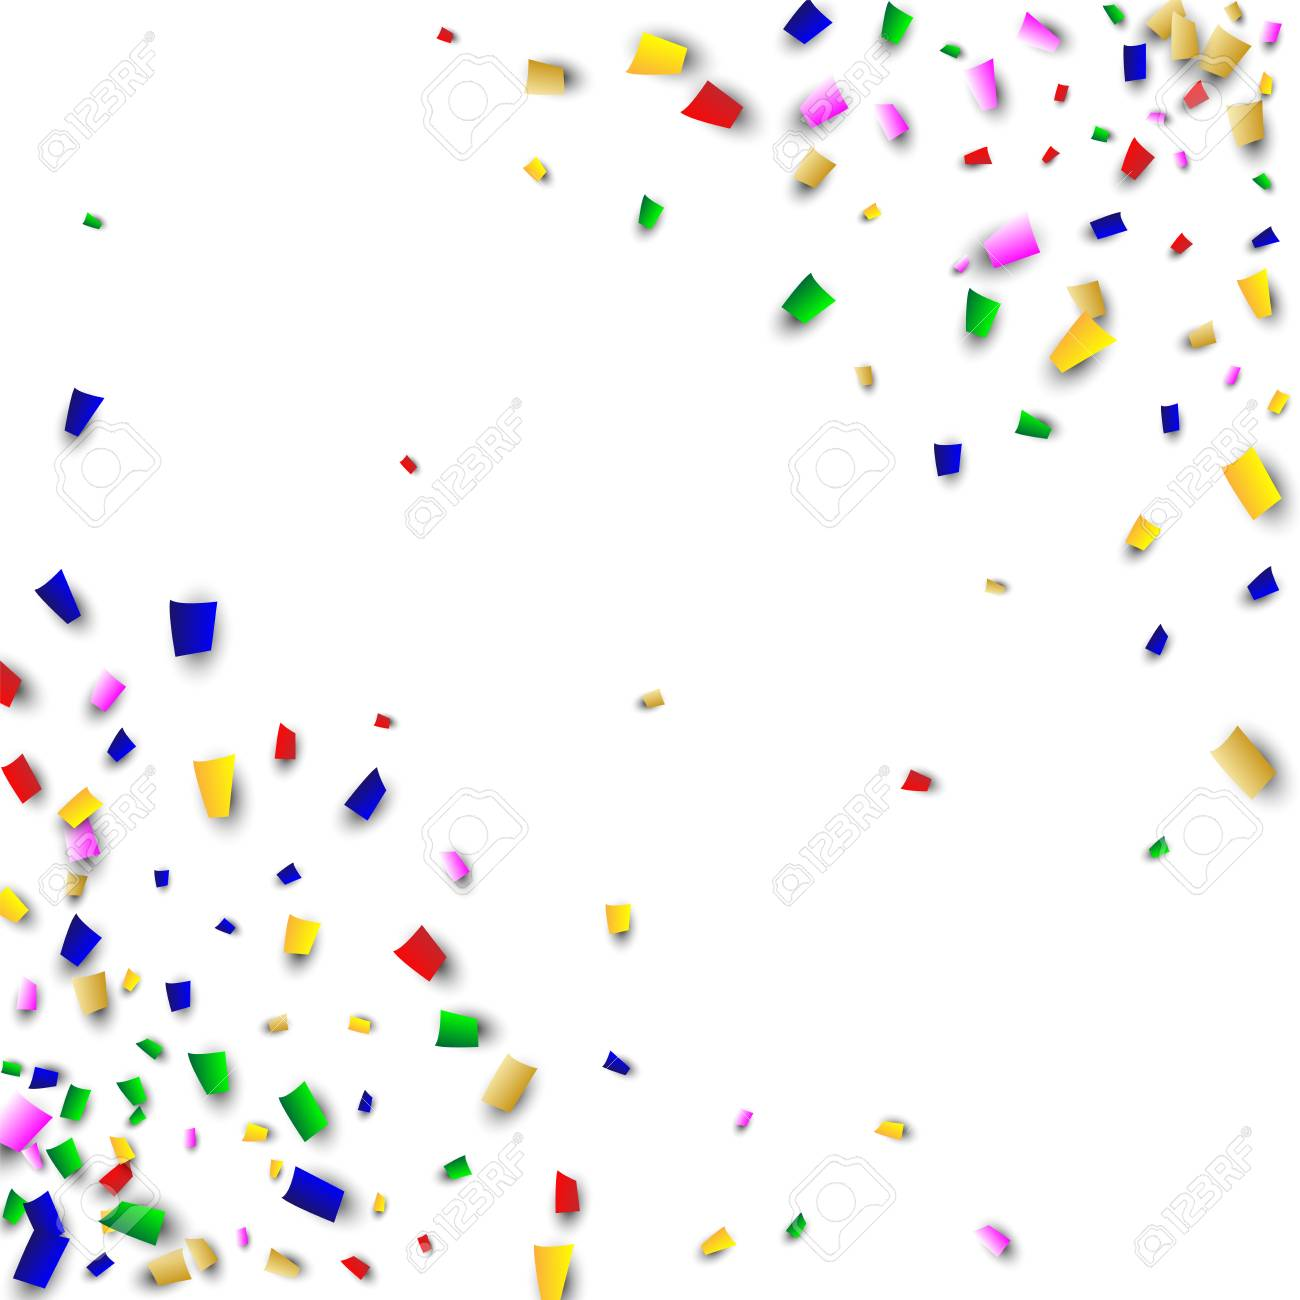 Colorful Celebration Confetti Scattered On White Background 1300x1300